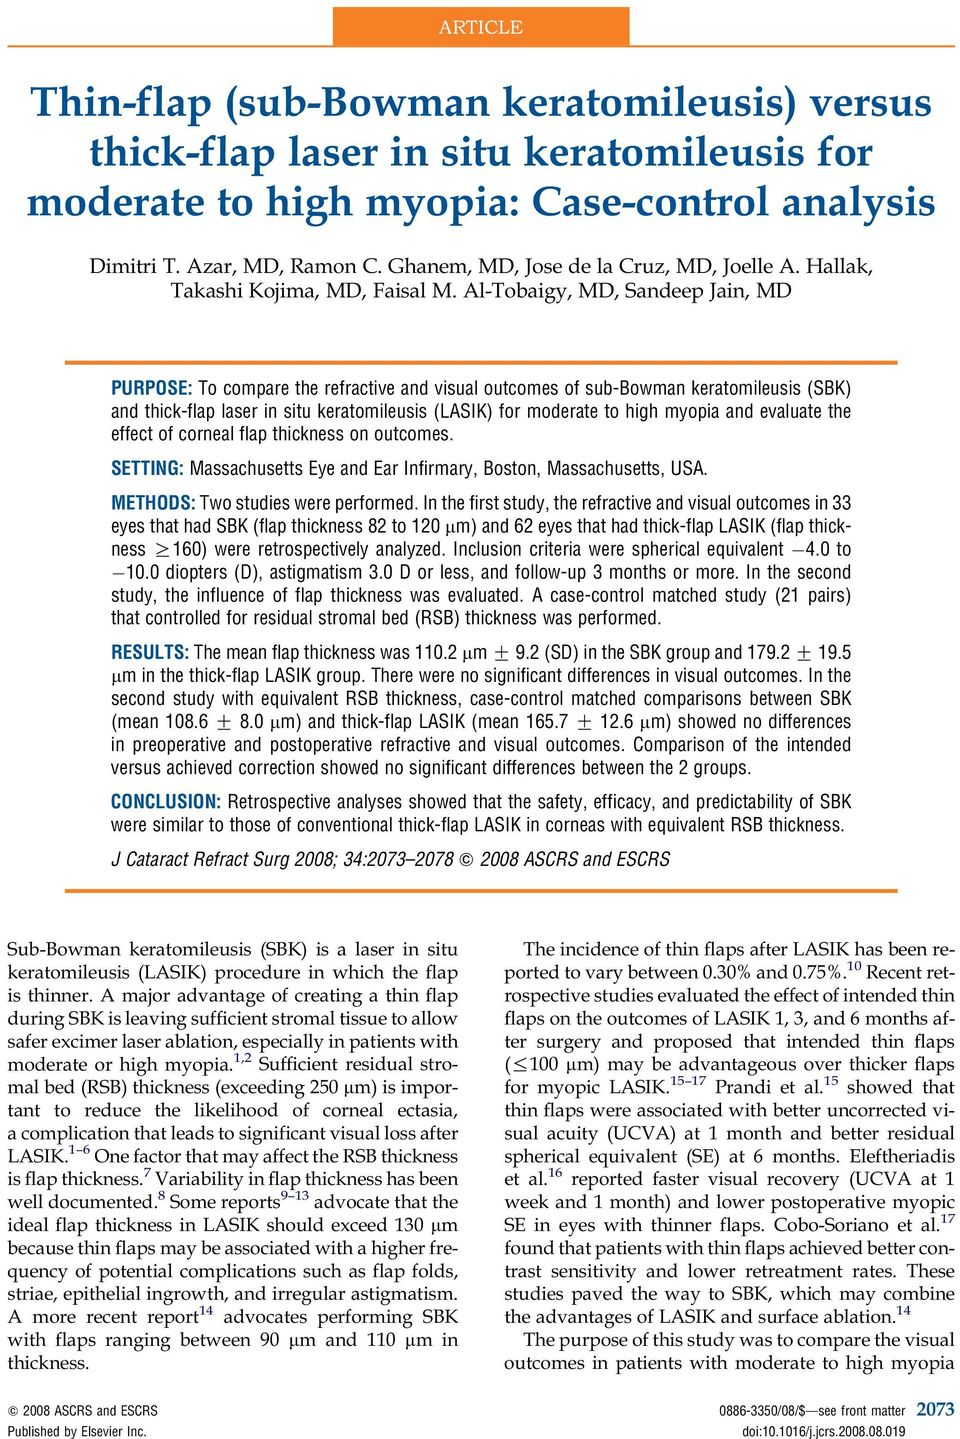 Al-Tobaigy, MD, Sandeep Jain, MD UROSE: To compare the refractive and visual outcomes of sub-bowman keratomileusis (SBK) and thick-flap laser in situ keratomileusis (LASIK) for moderate to high